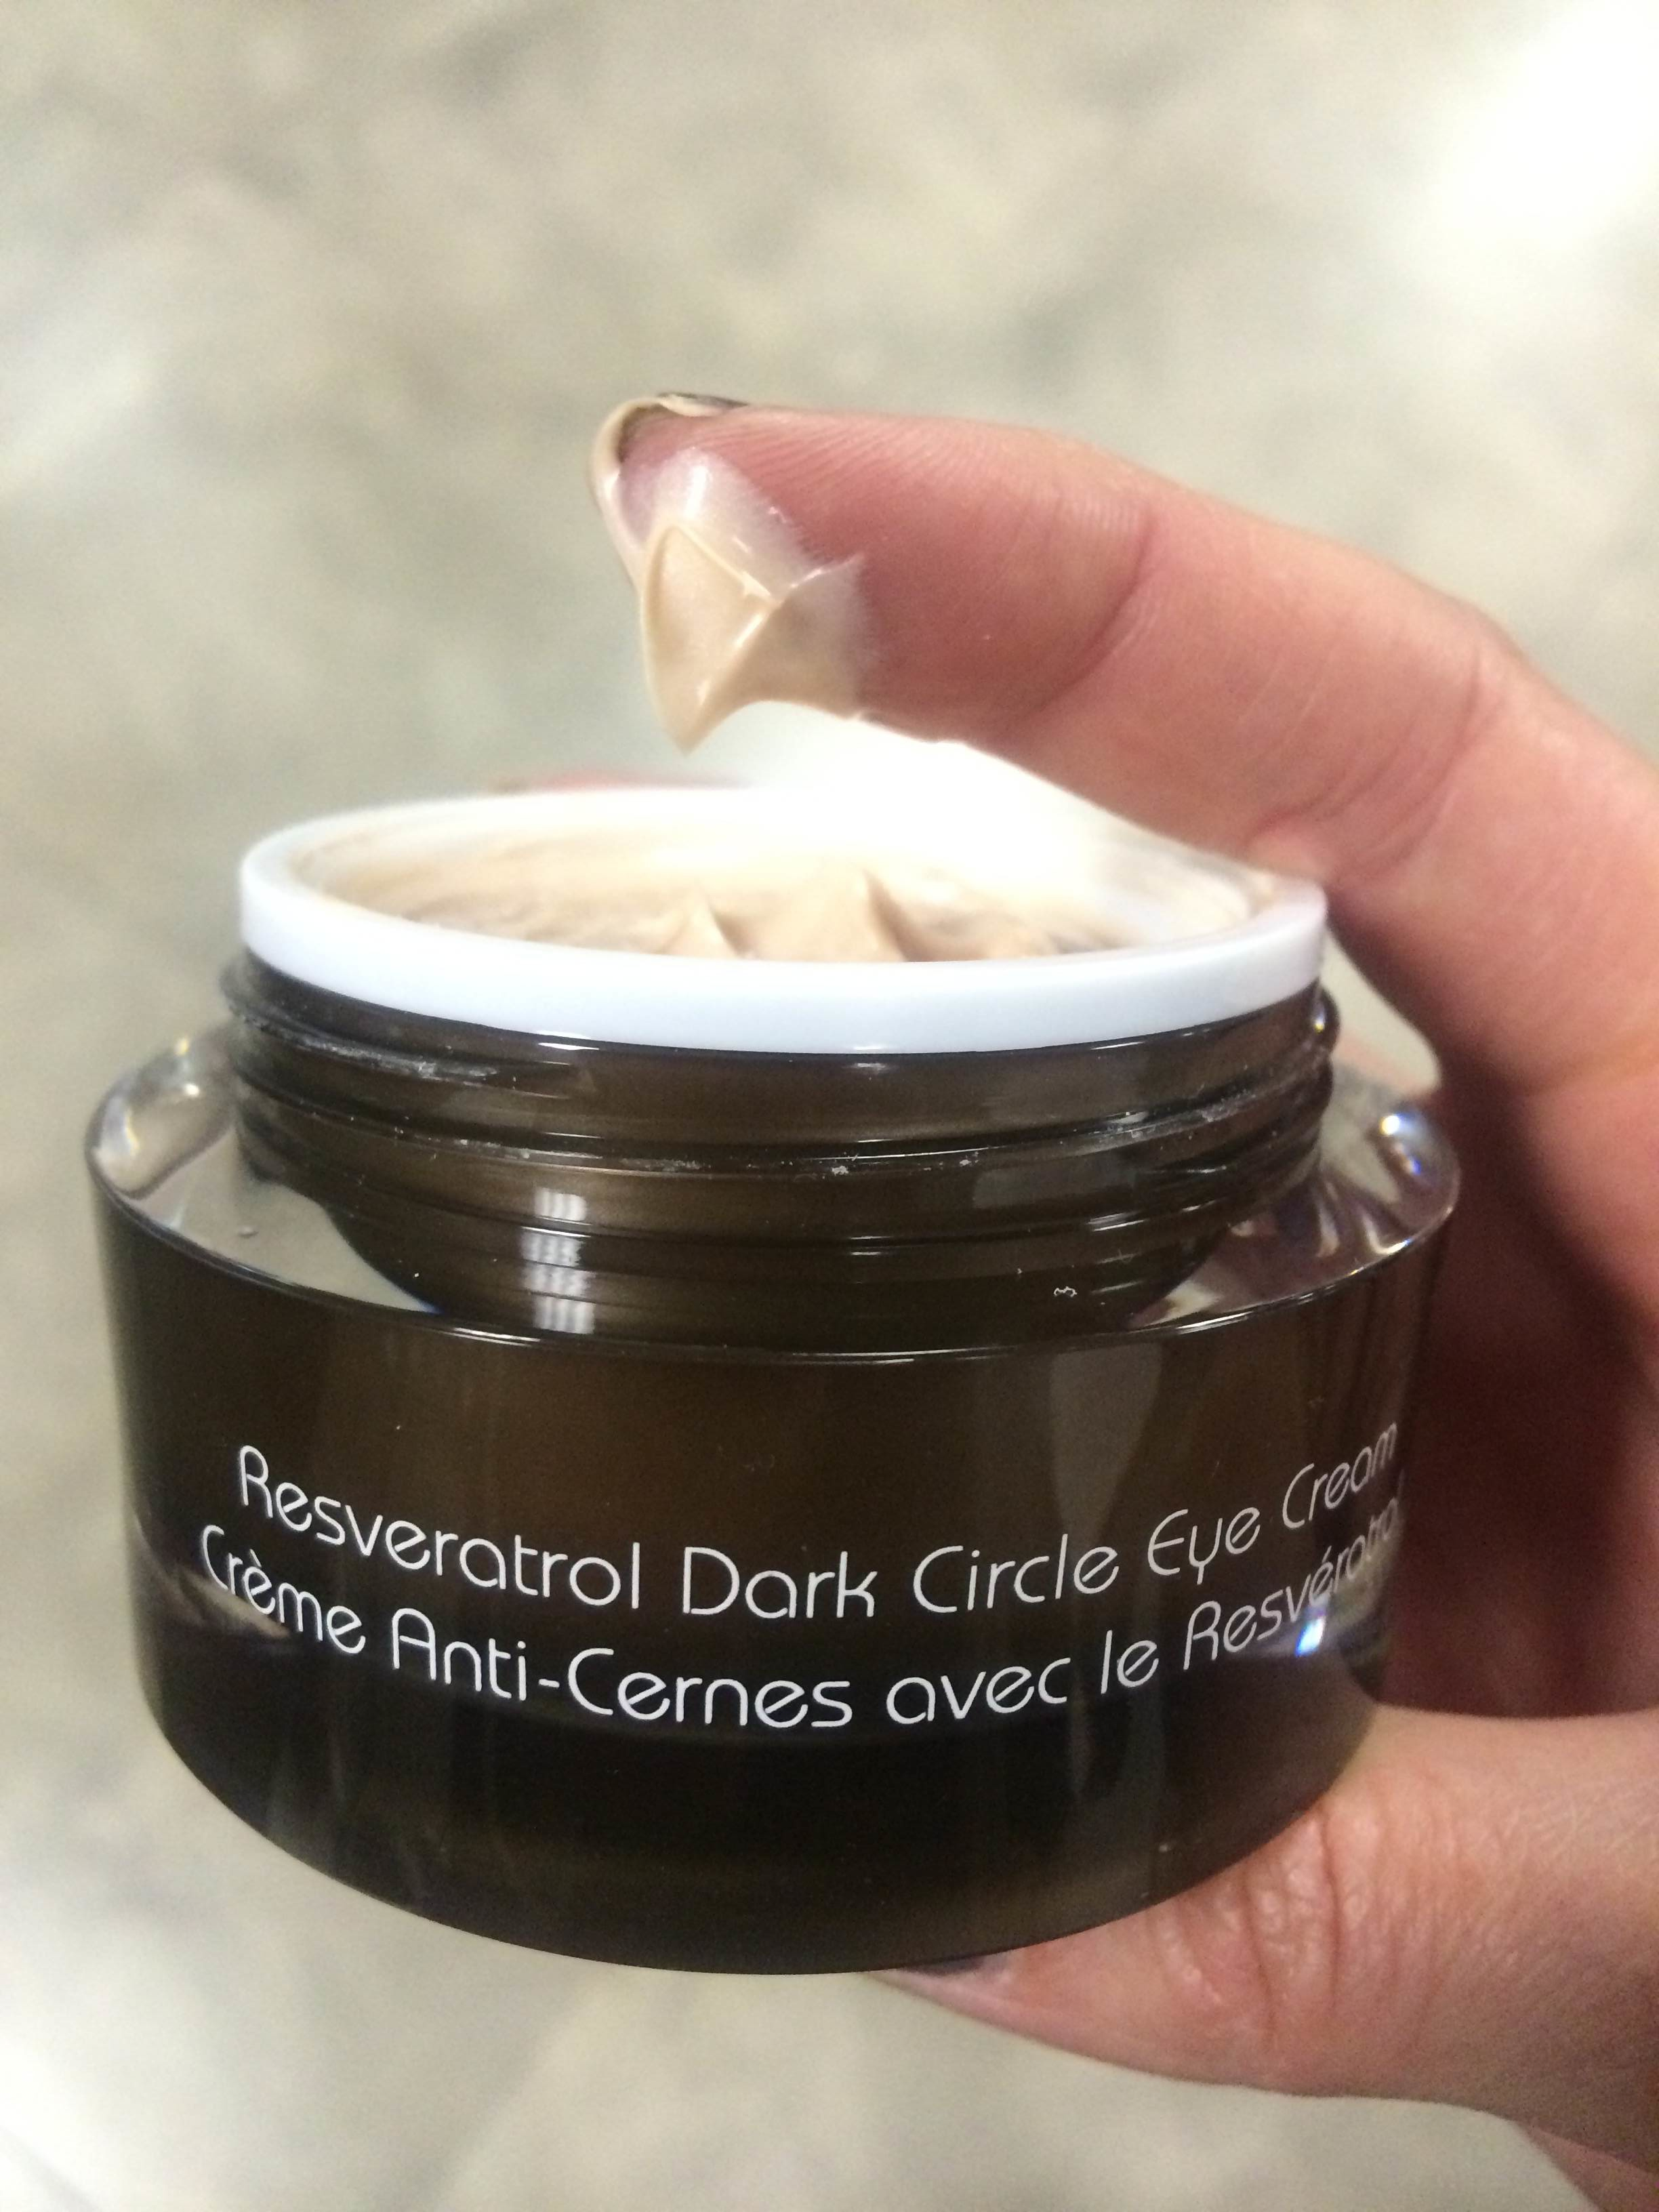 Vine Vera Resveratrol Dark Circle Eye Cream